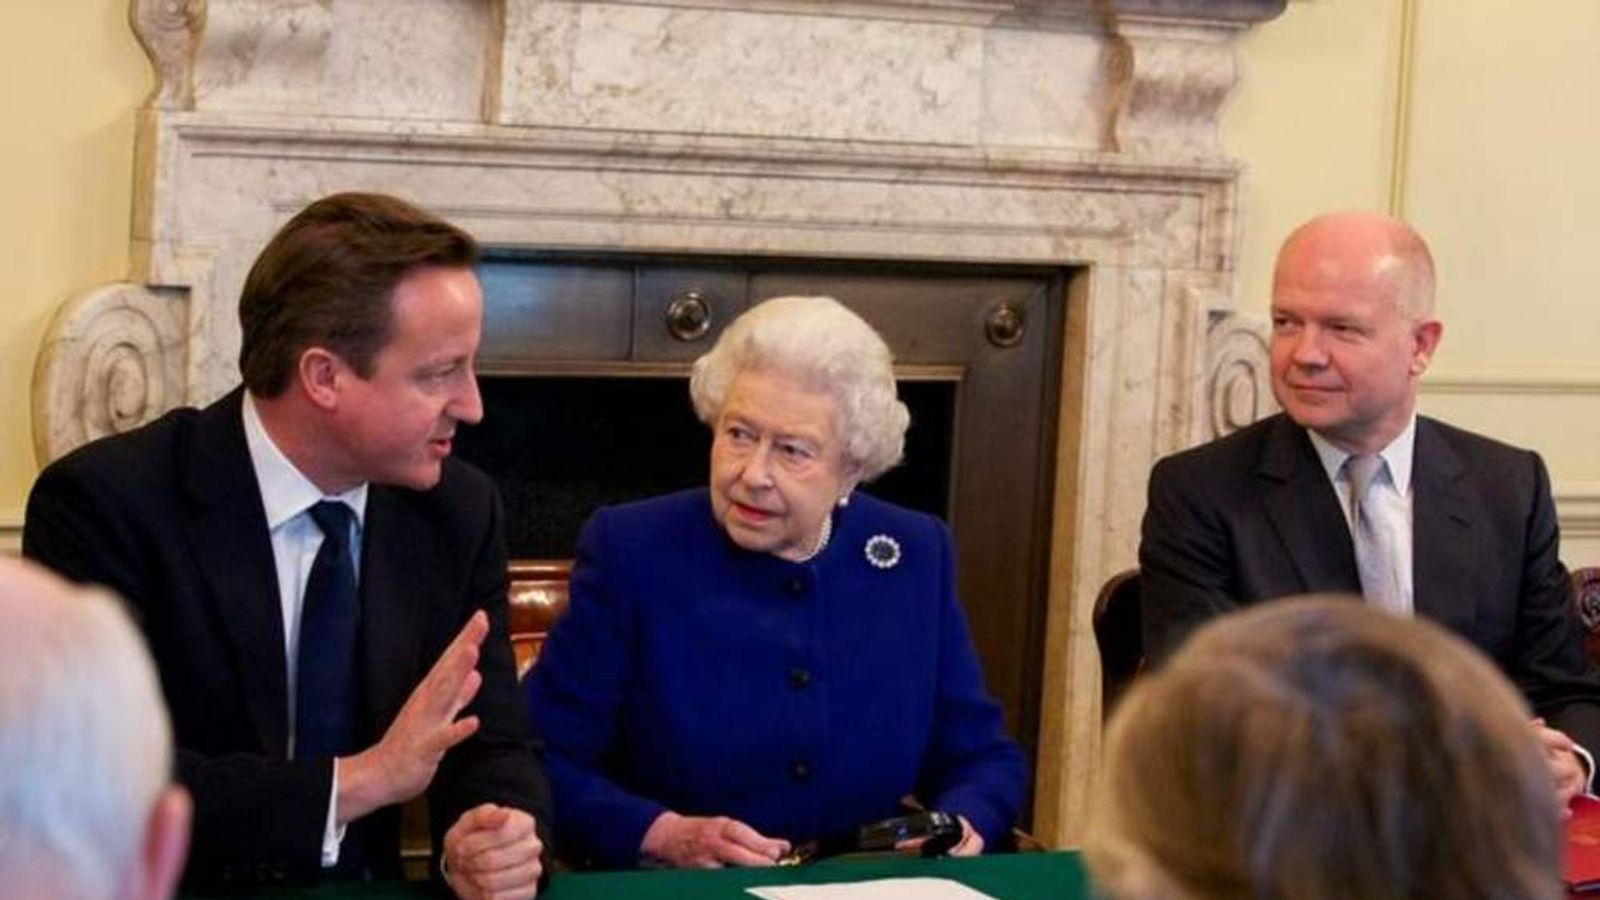 The Queen at Cabinet